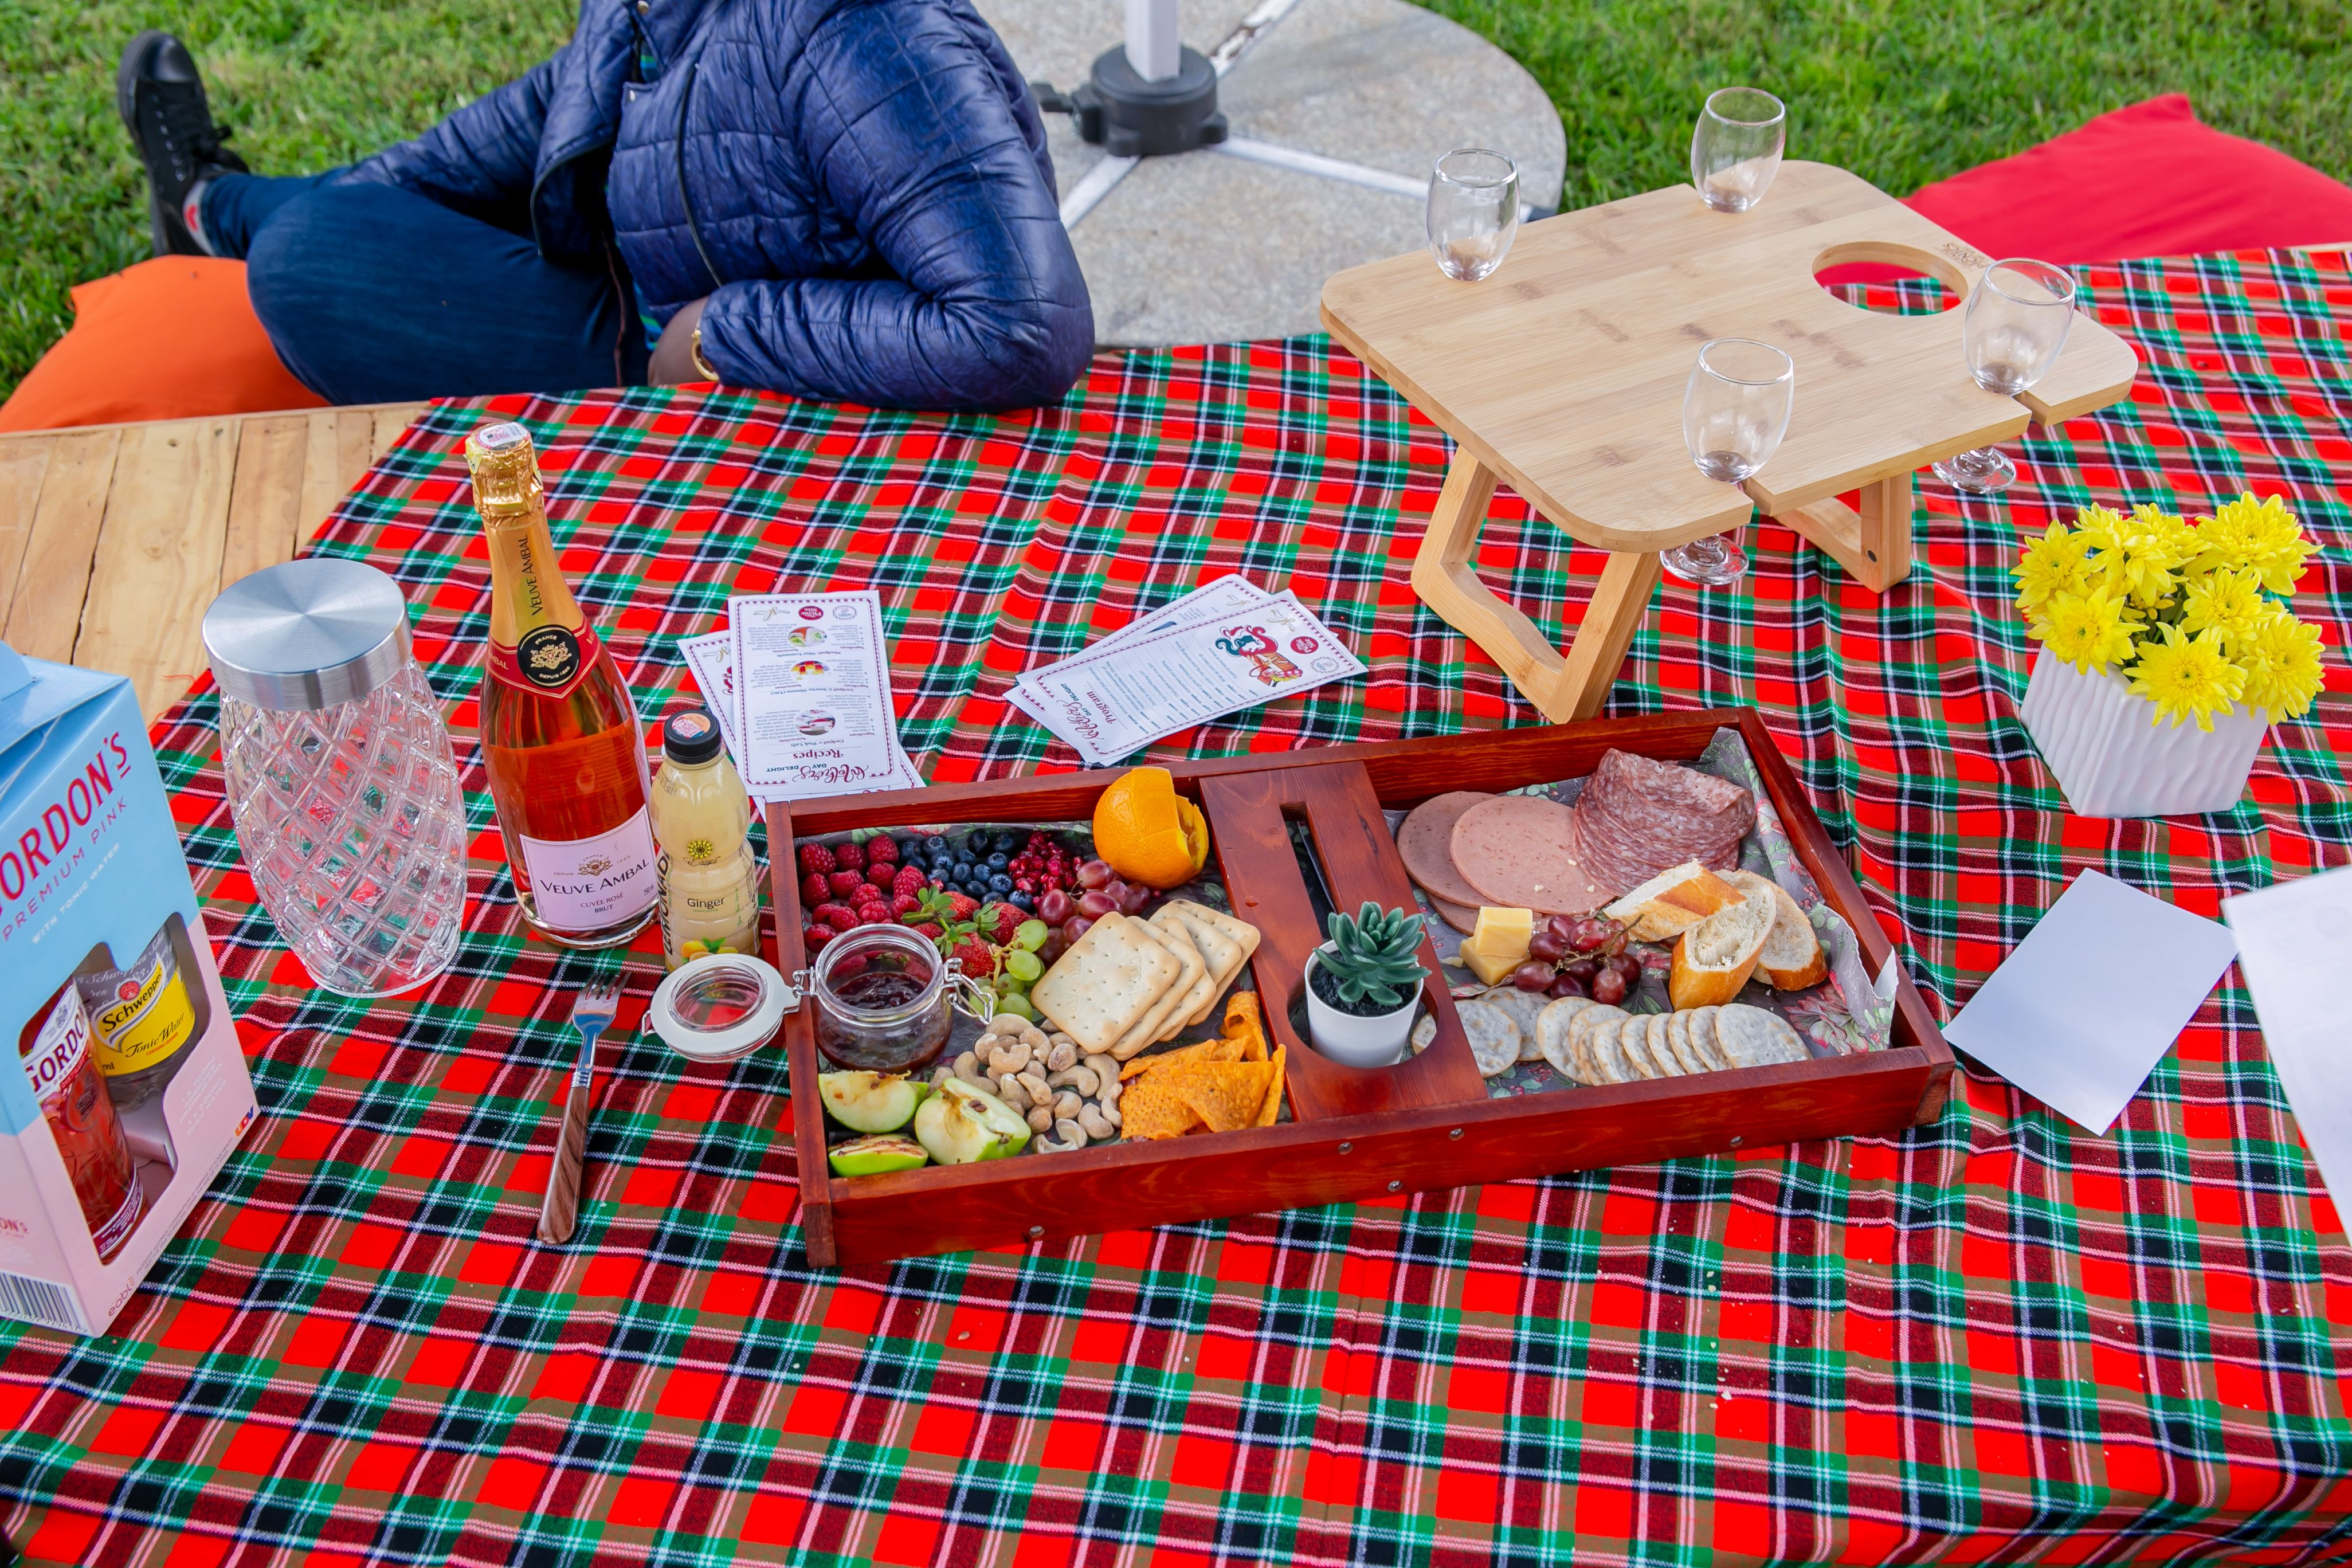 Our Green Alternative: Simple Ways To Host An Eco-friendly Picnic